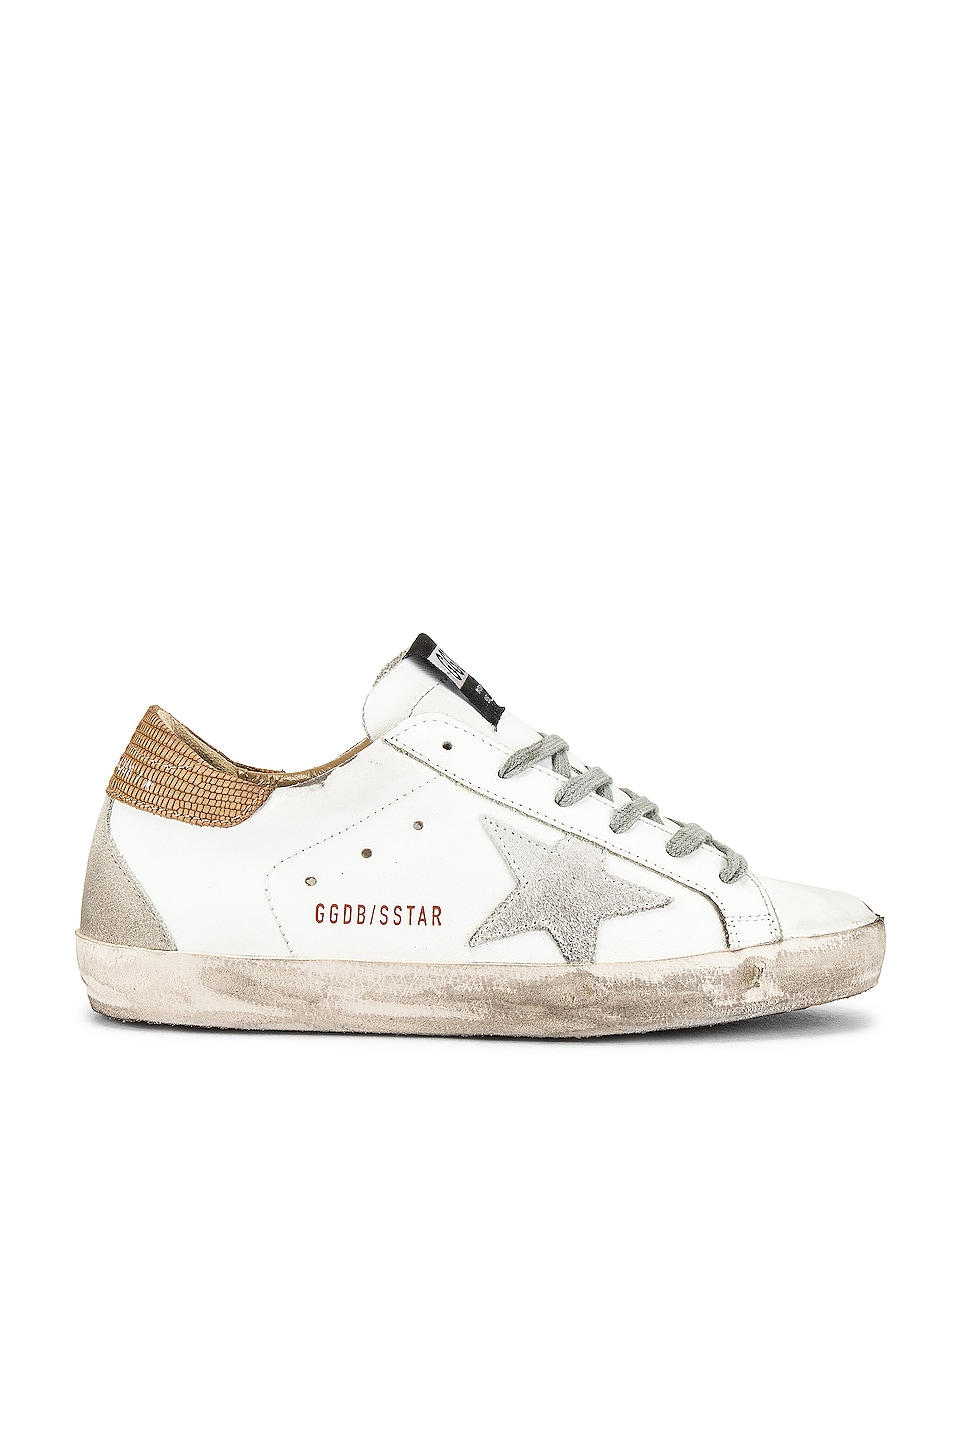 Golden Goose Superstar Sneakers in White, Light Brown Lizard & Suede Star